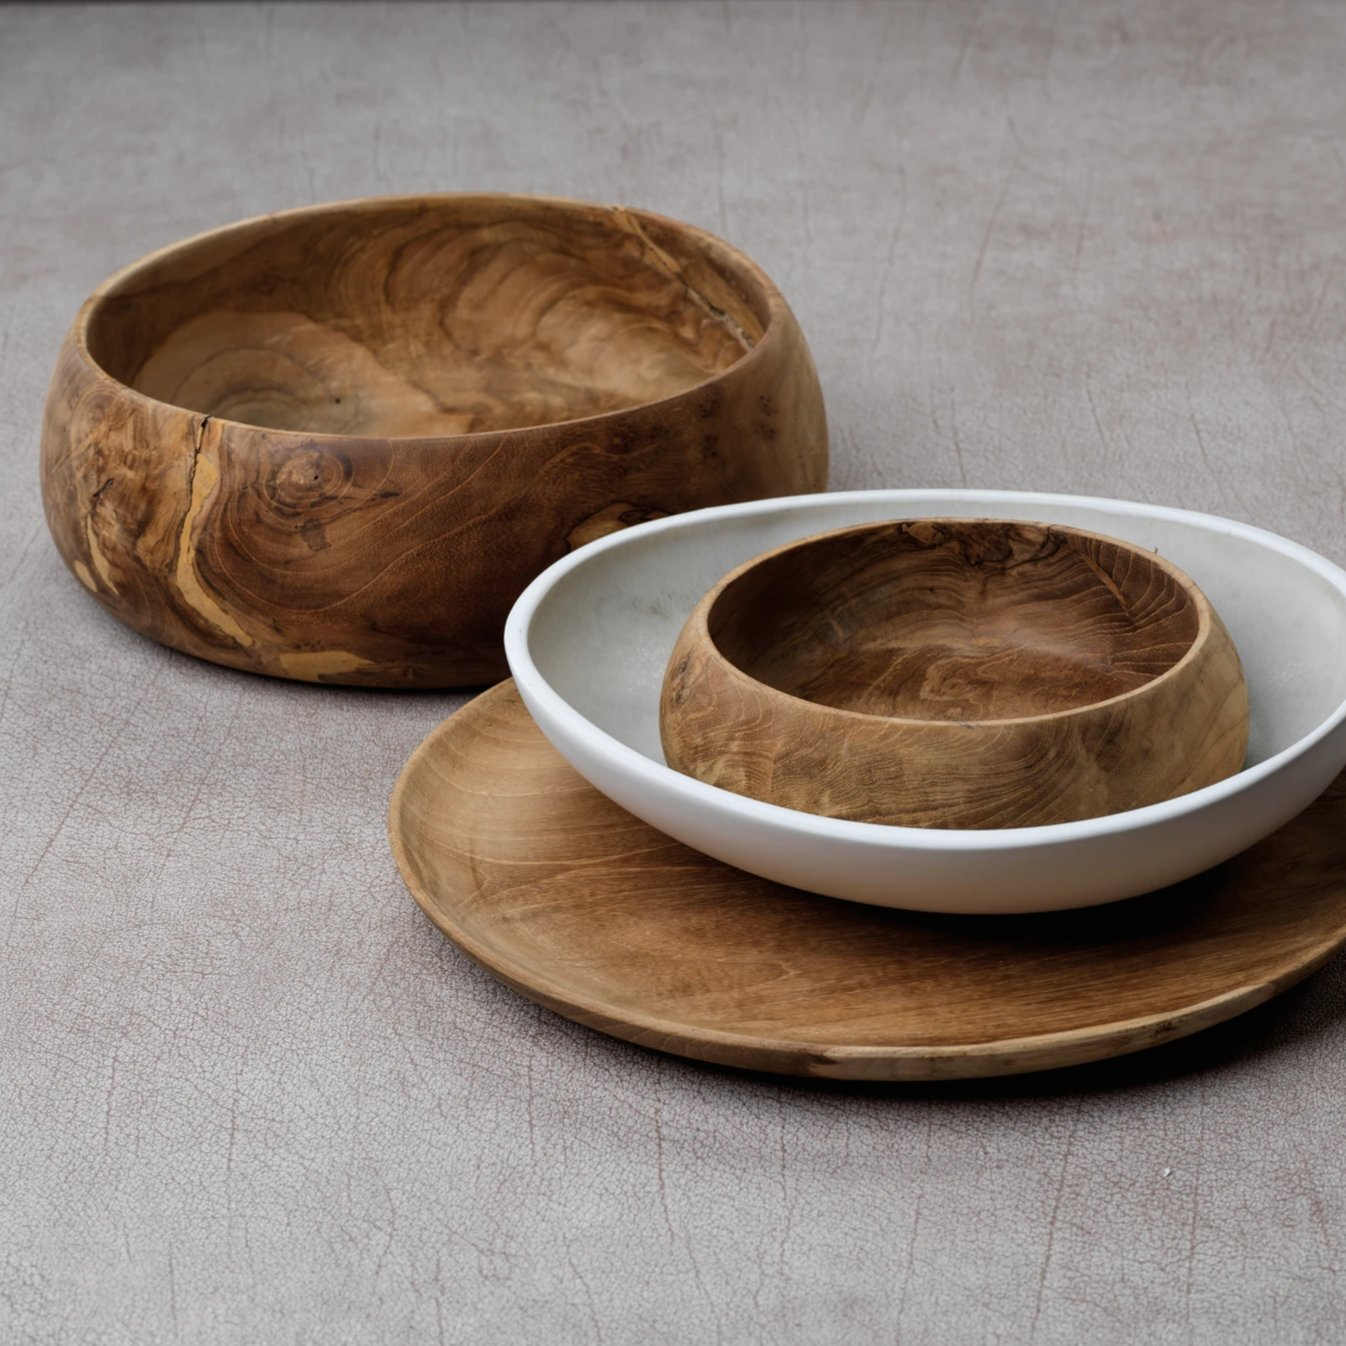 Bali Teak Wood Bowls - Set of 3 - CARLYLE AVENUE